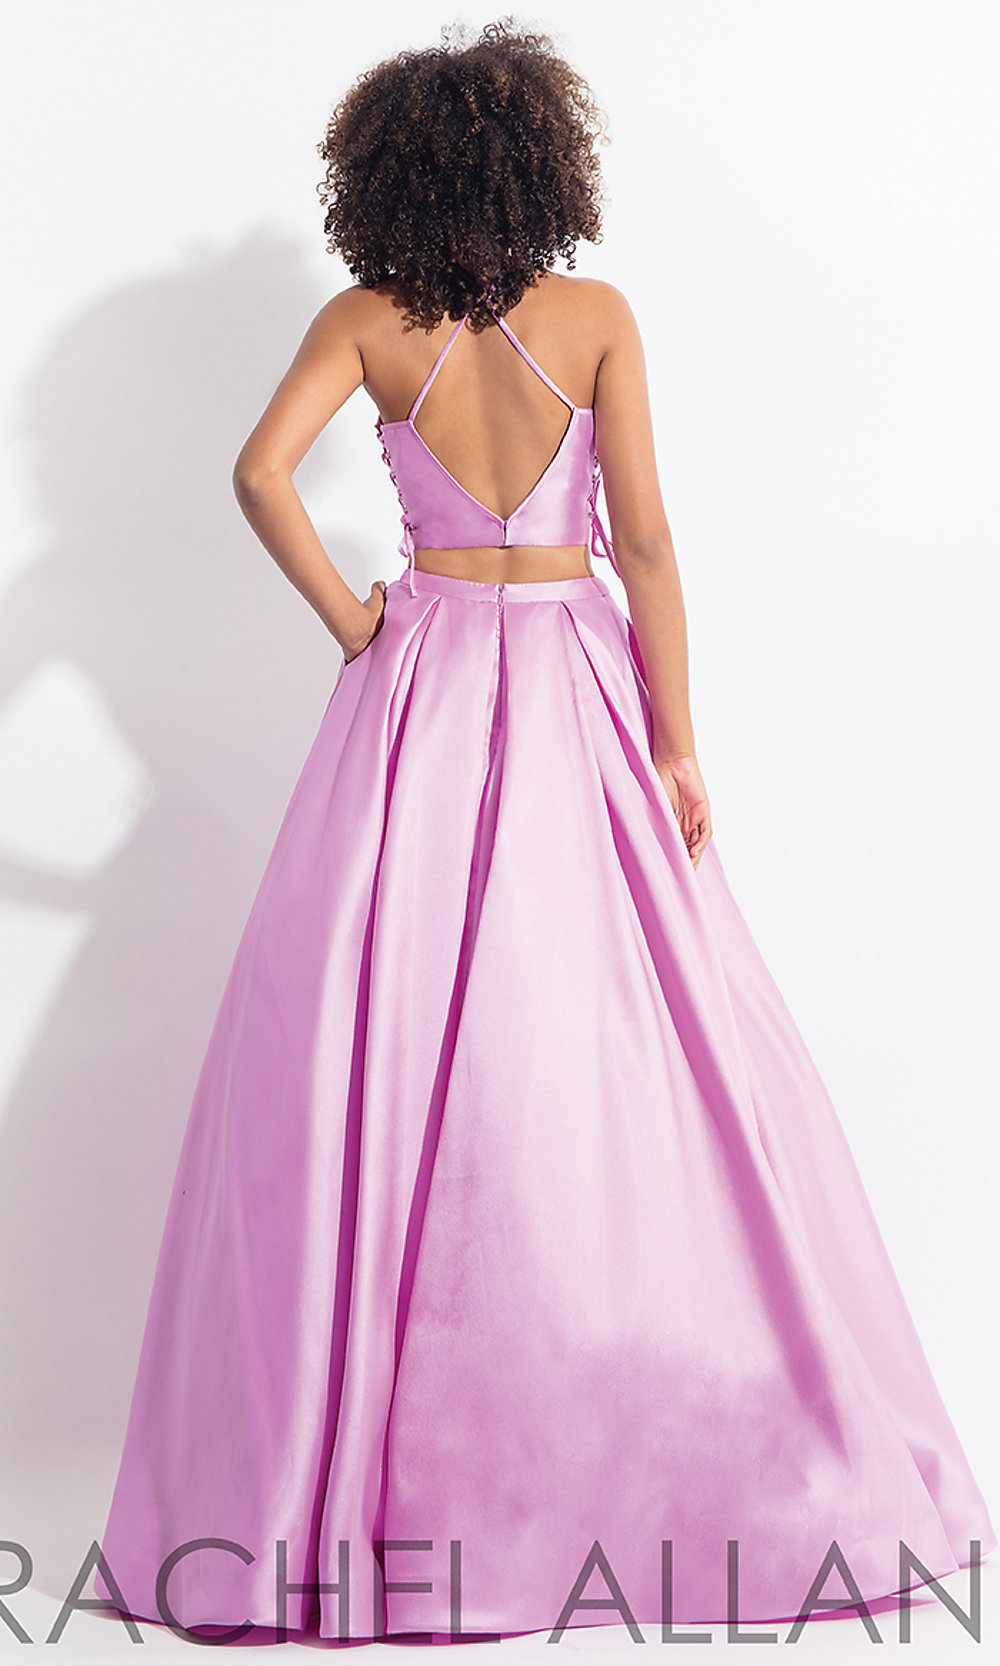 prom hair style ideas two prom dress with lace up sides 6040 | lilac dress PT RA 6040 b